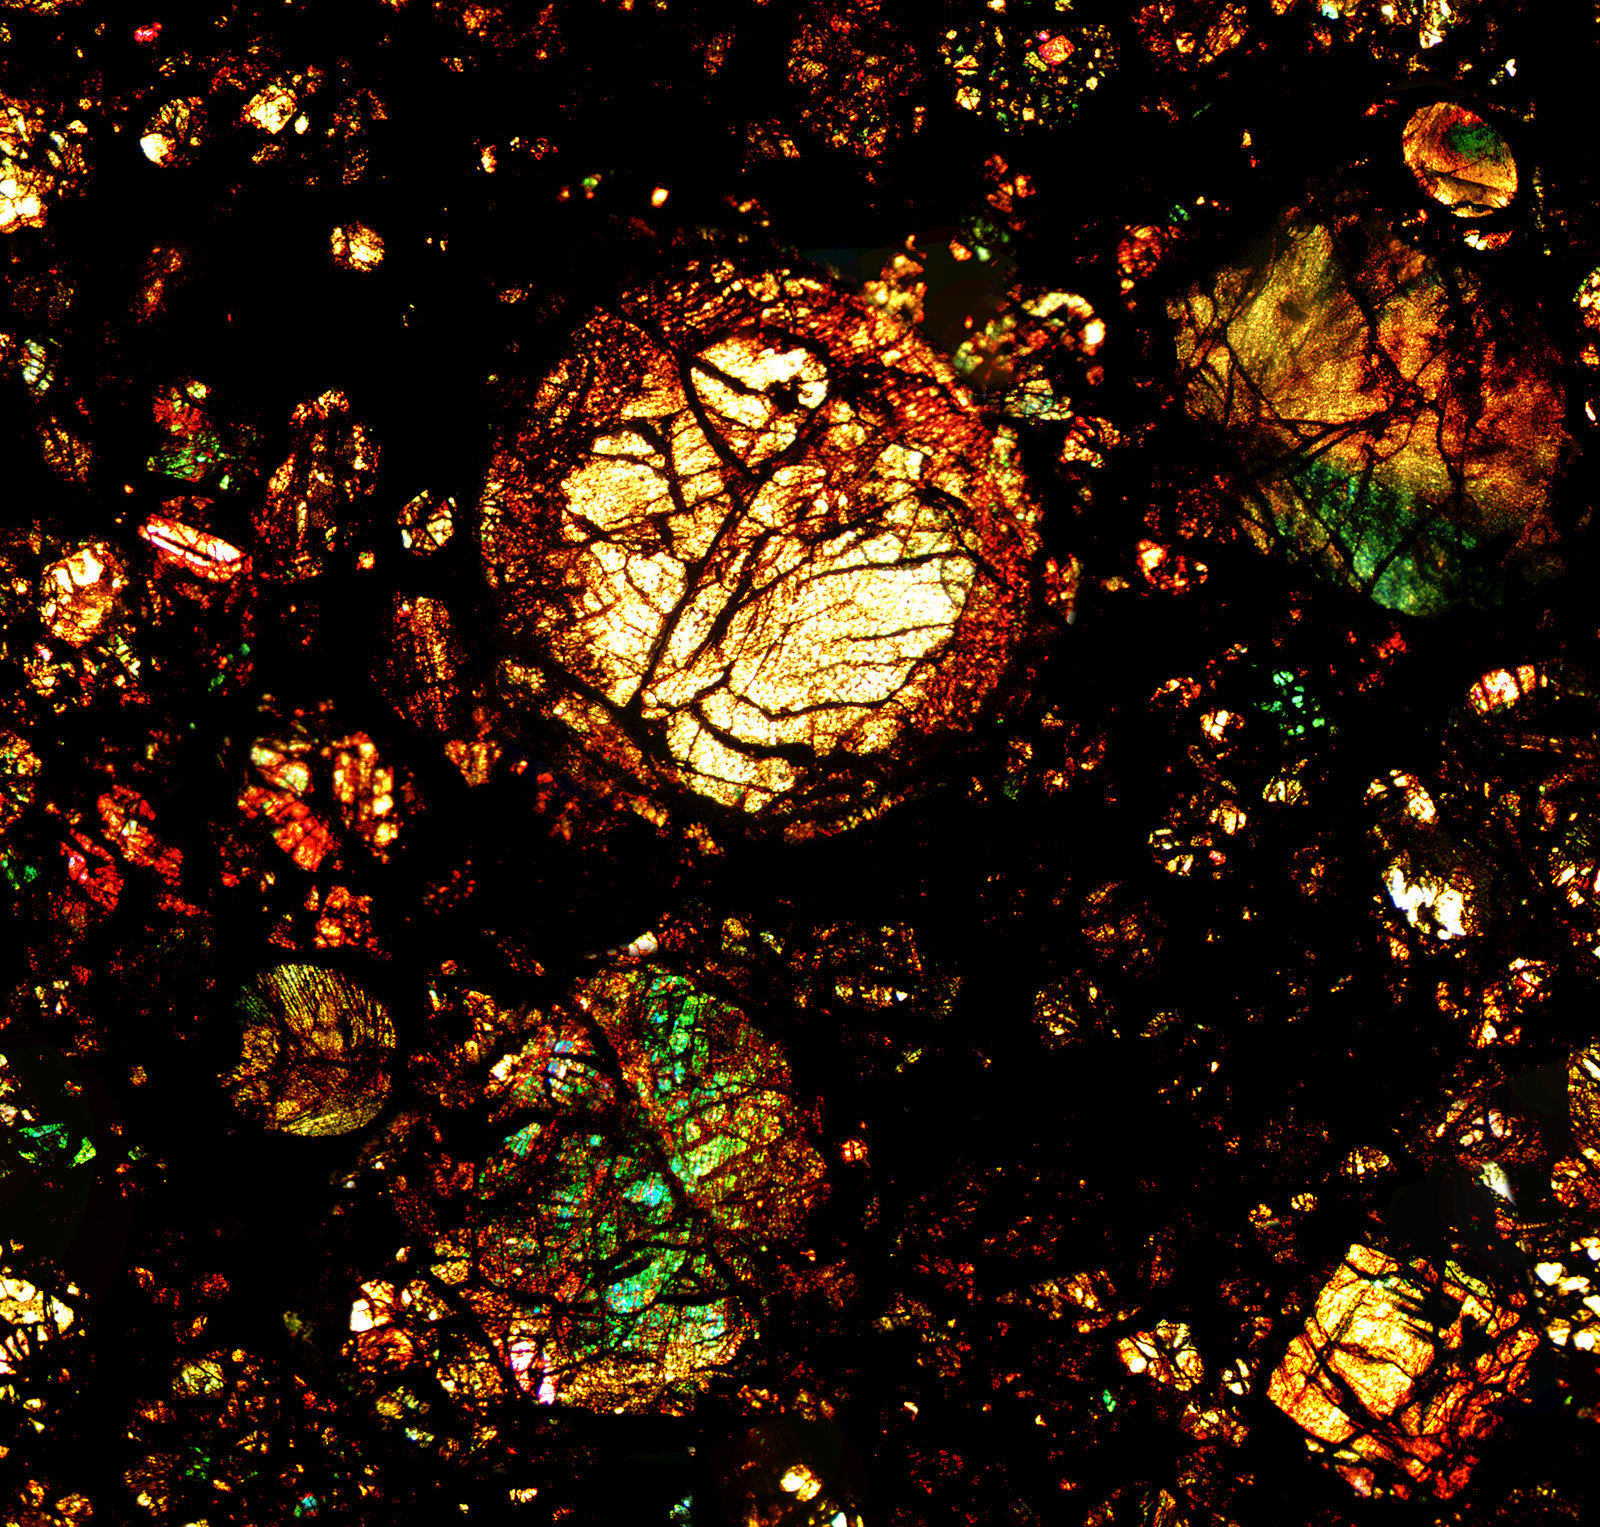 Microscopic views of meteorites